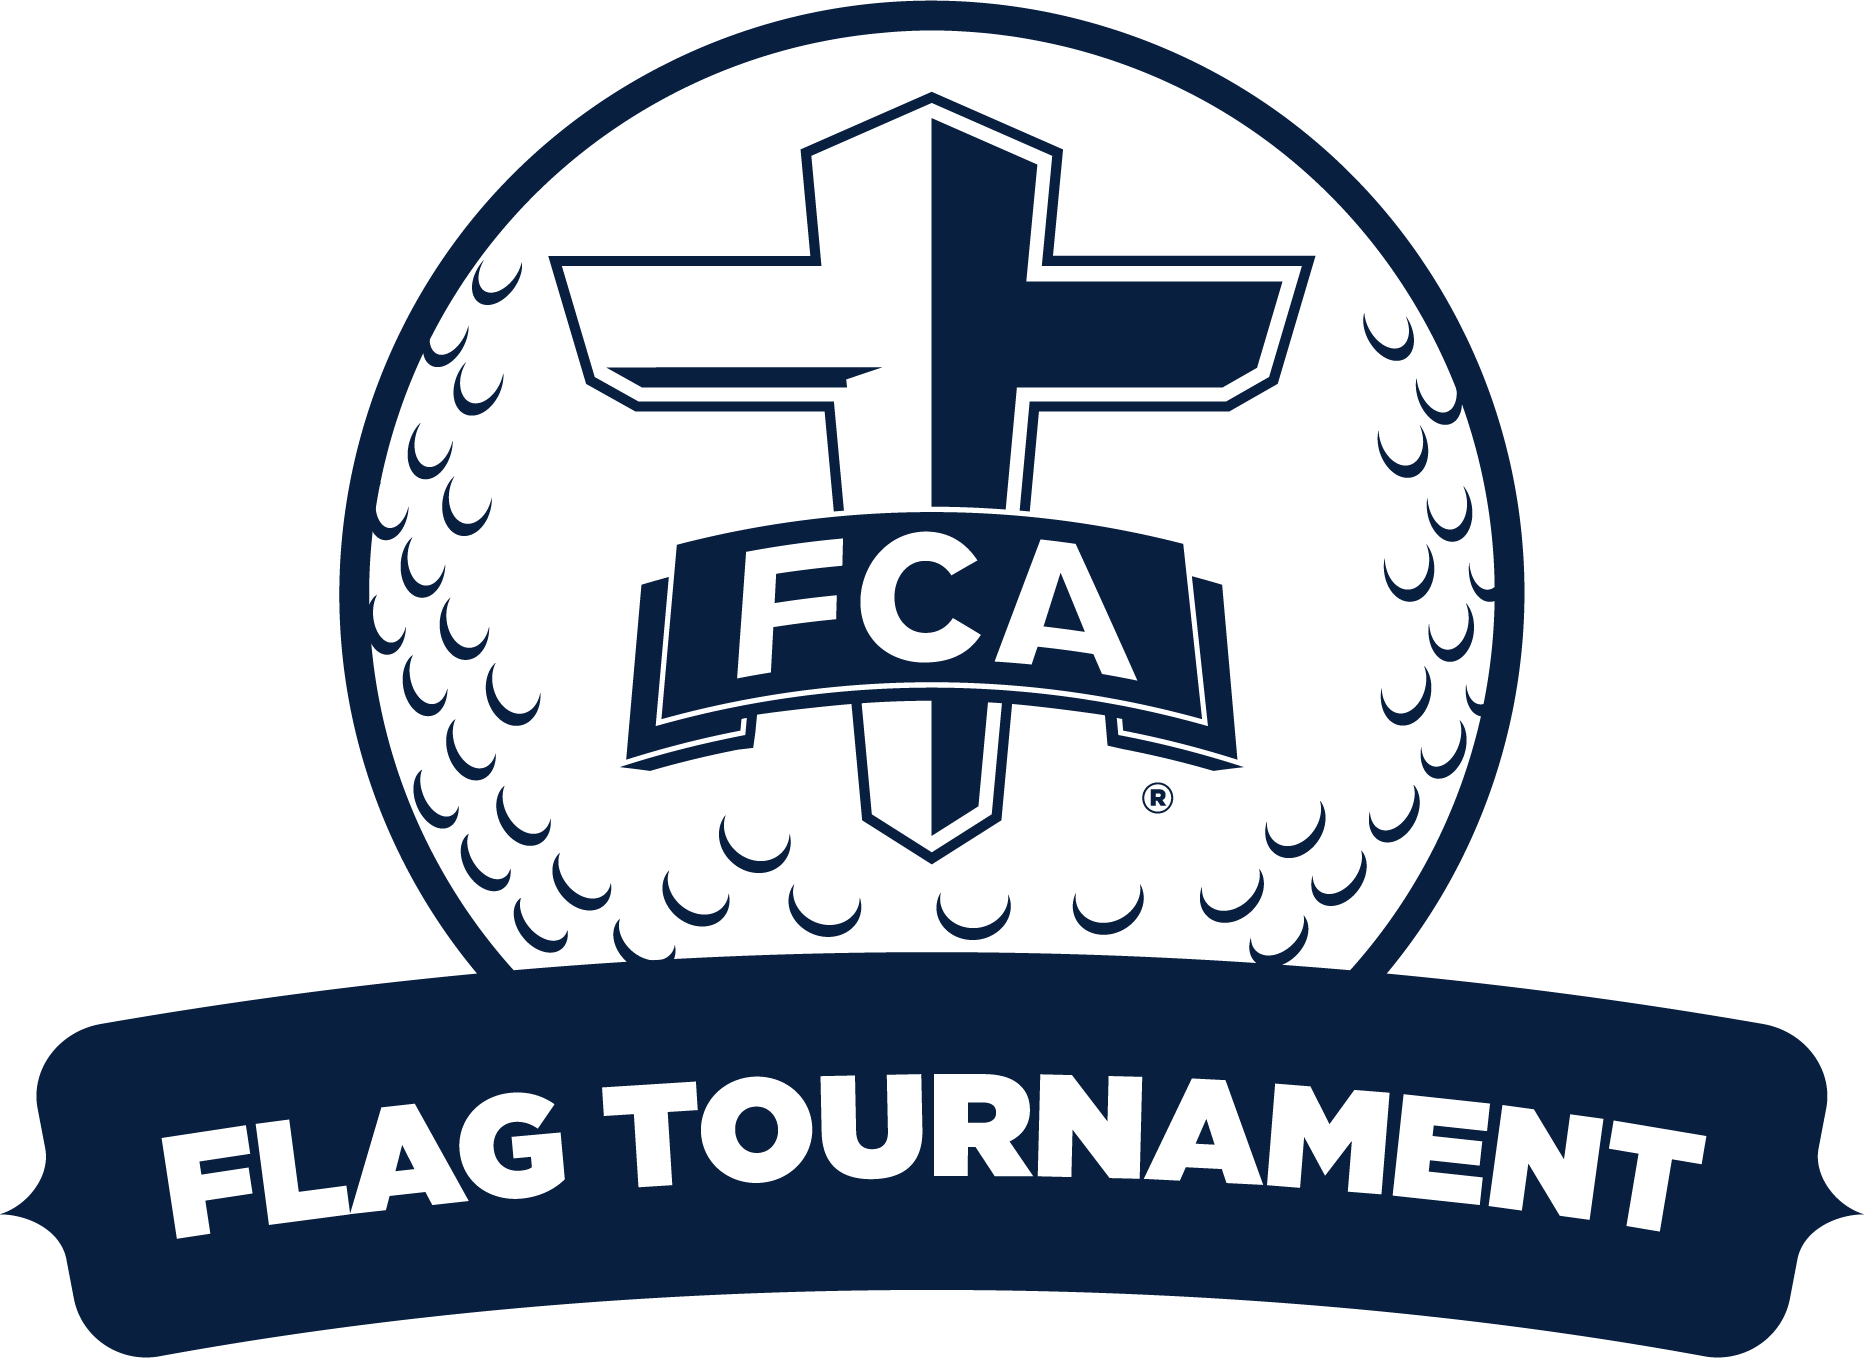 Clip system fca. Maryland flag tournament by